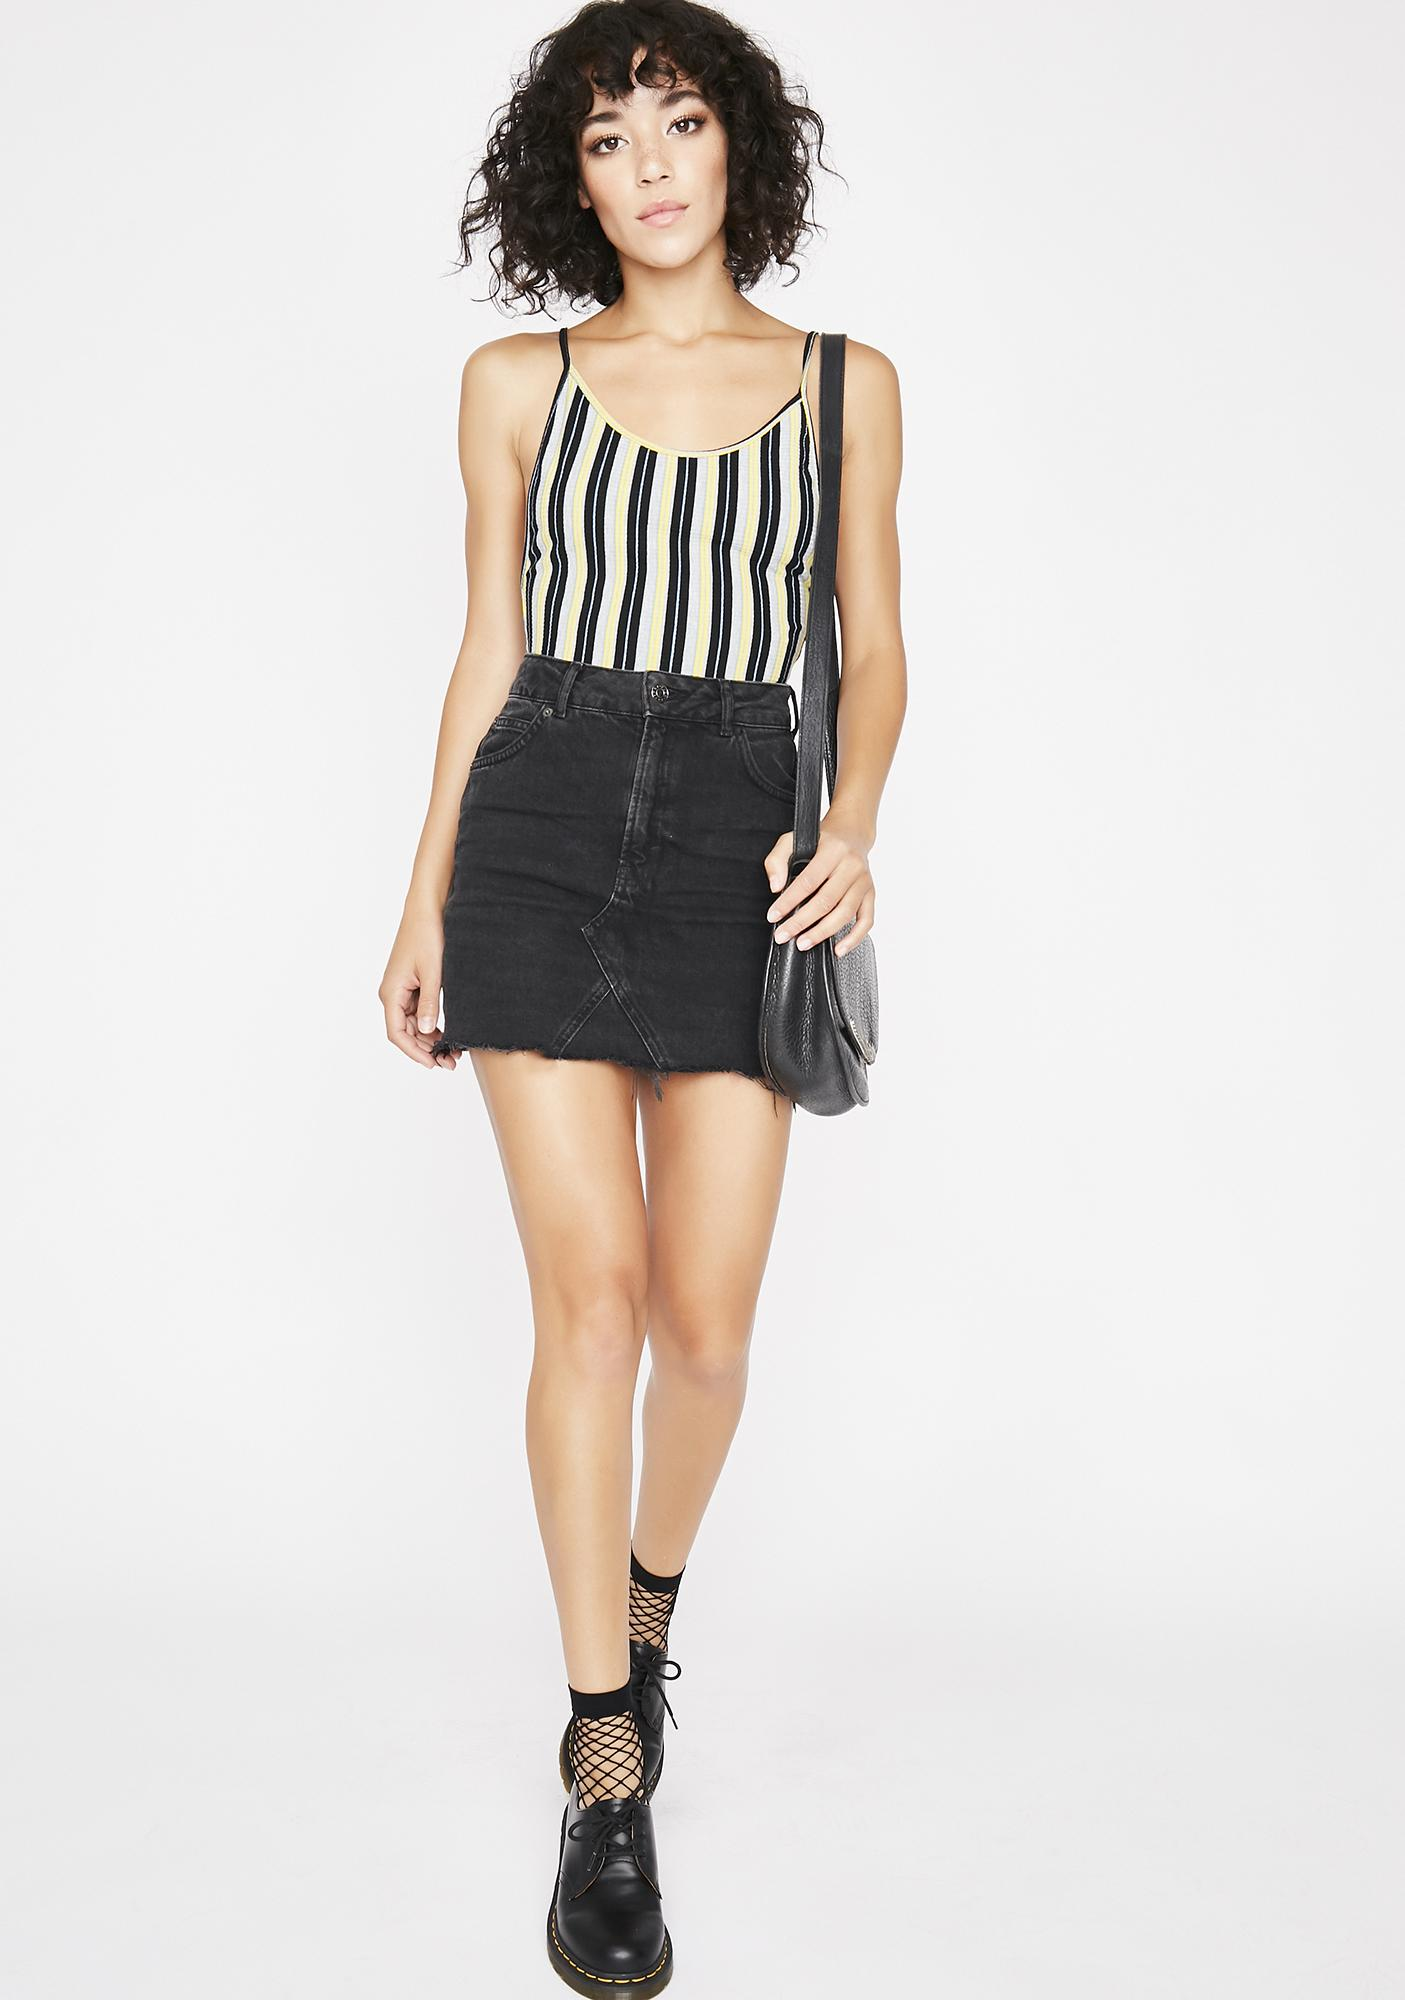 Dark Get Into Trouble Striped Bodysuit